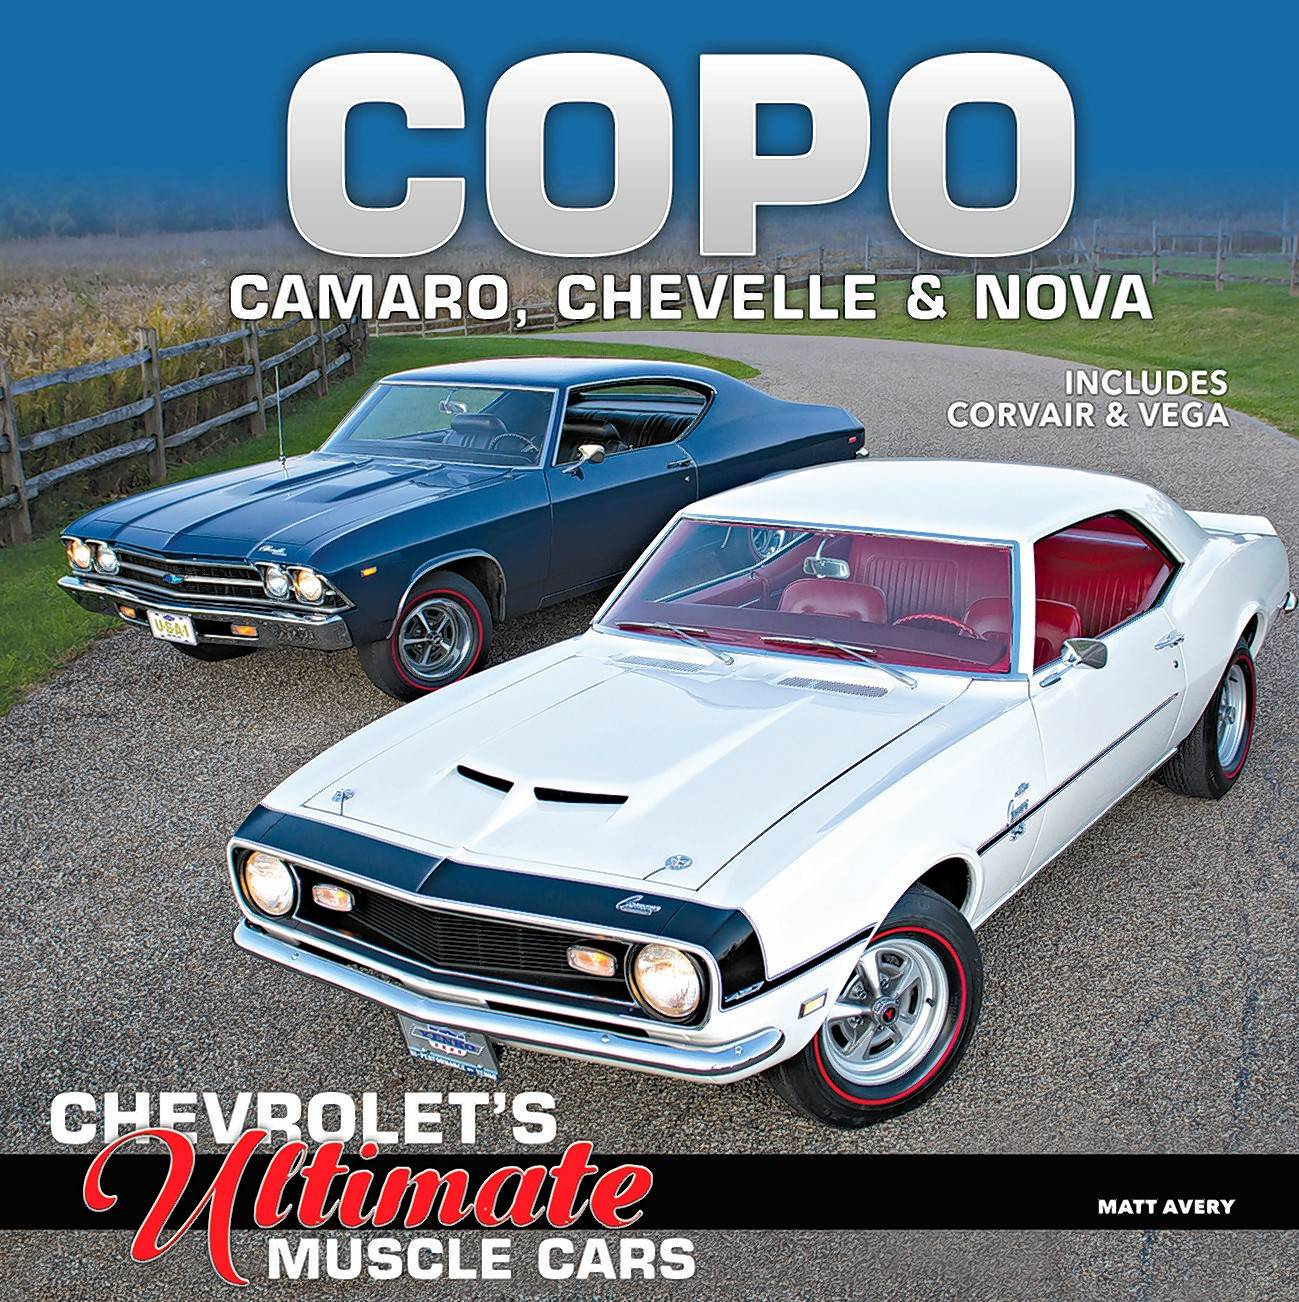 Avery traveled the country to hear stories from COPO owners and take photographs of their Camaros, Chevelles and Novas.